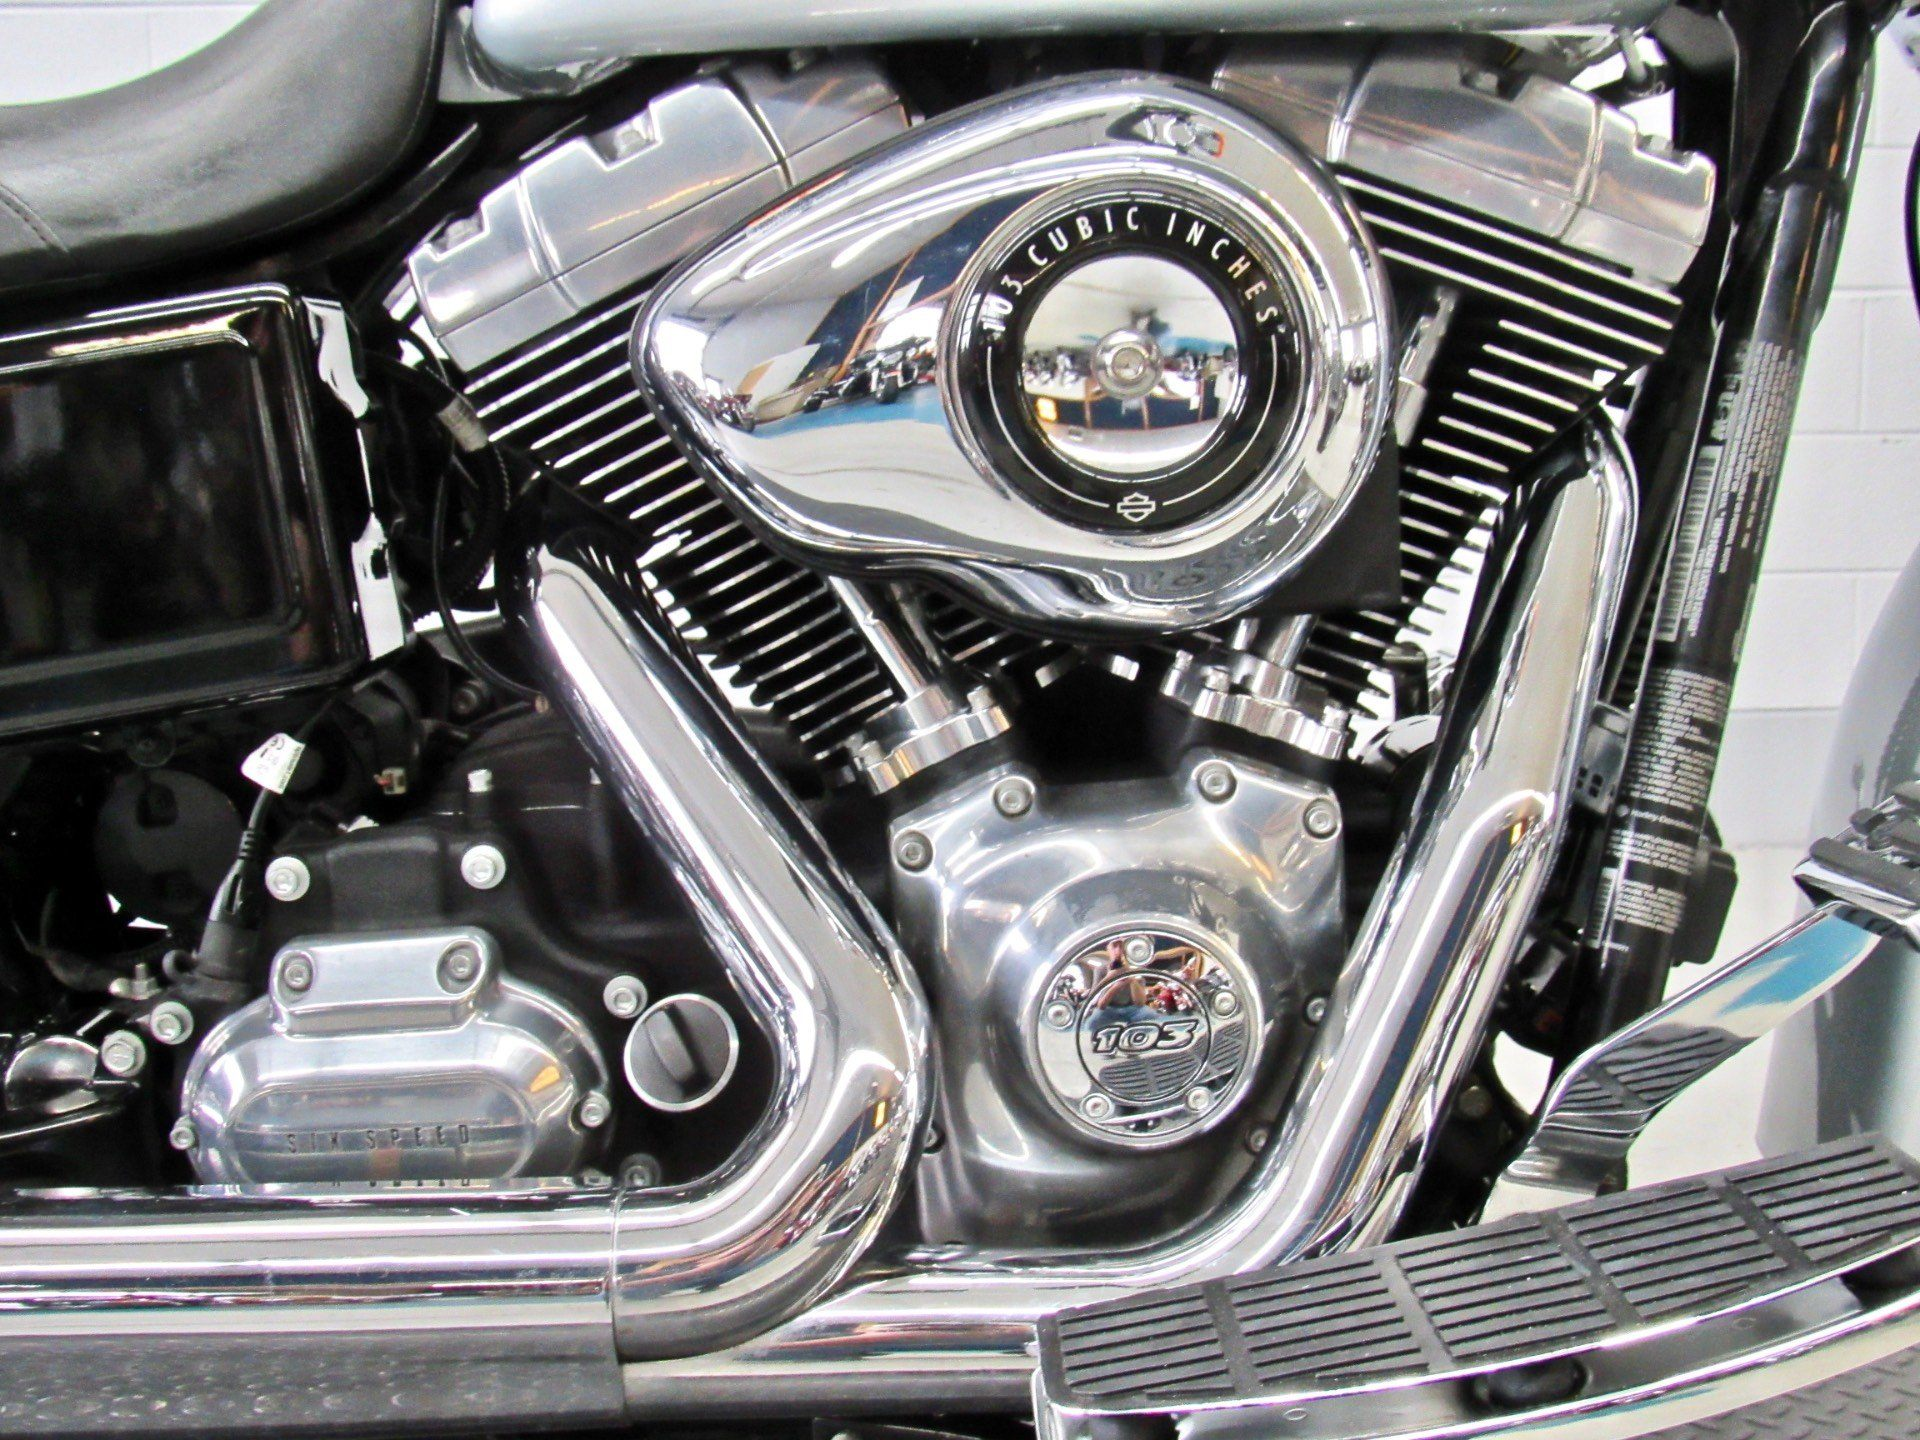 2012 Harley-Davidson Dyna® Switchback in Fredericksburg, Virginia